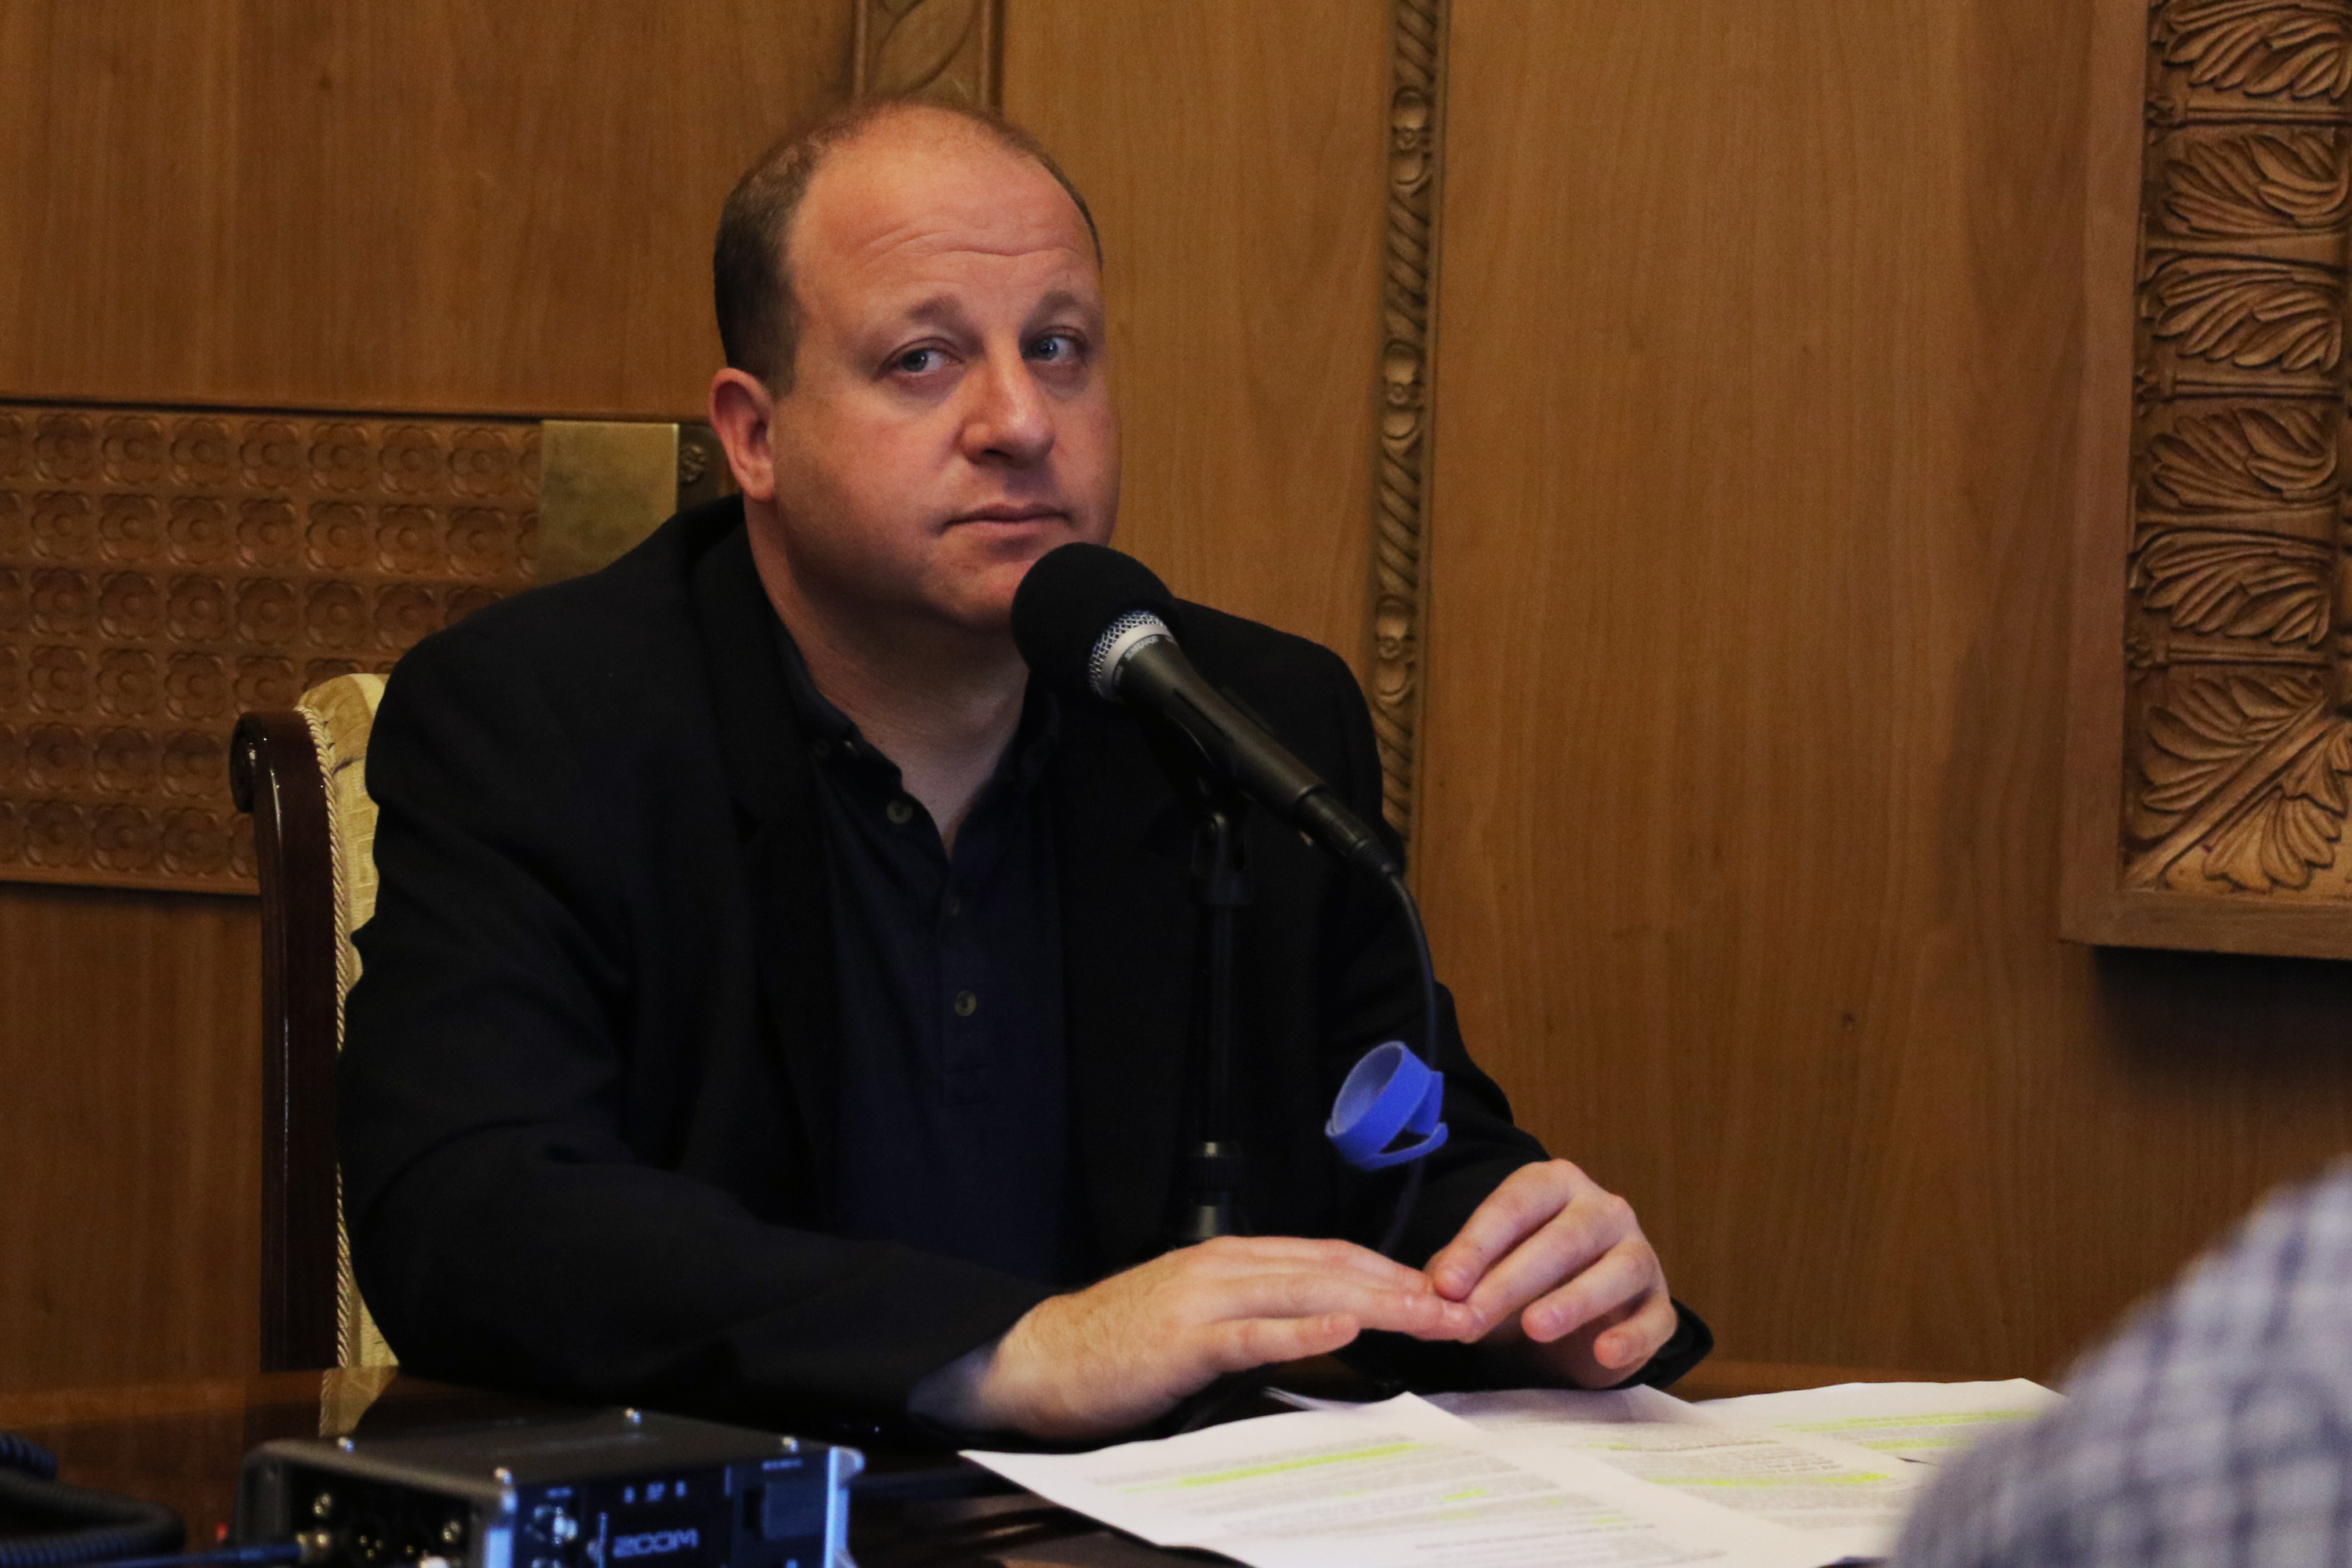 Gov. Jared Polis in his office at the state Capitol on Wednesday, Sept. 25, 2019.